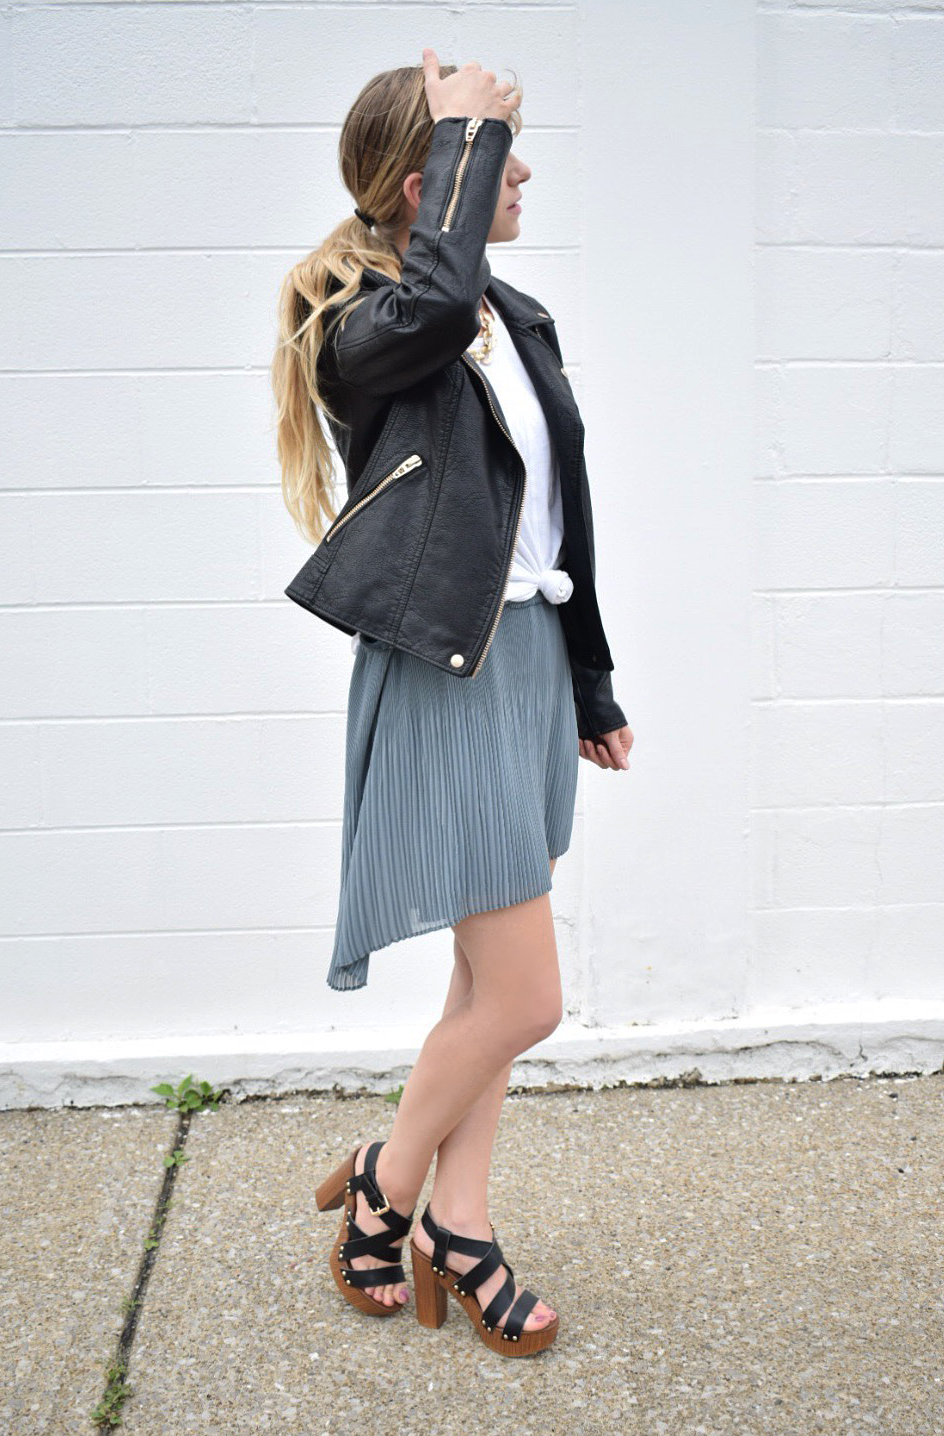 Leather Moto Jacket with skirt, fall fashion